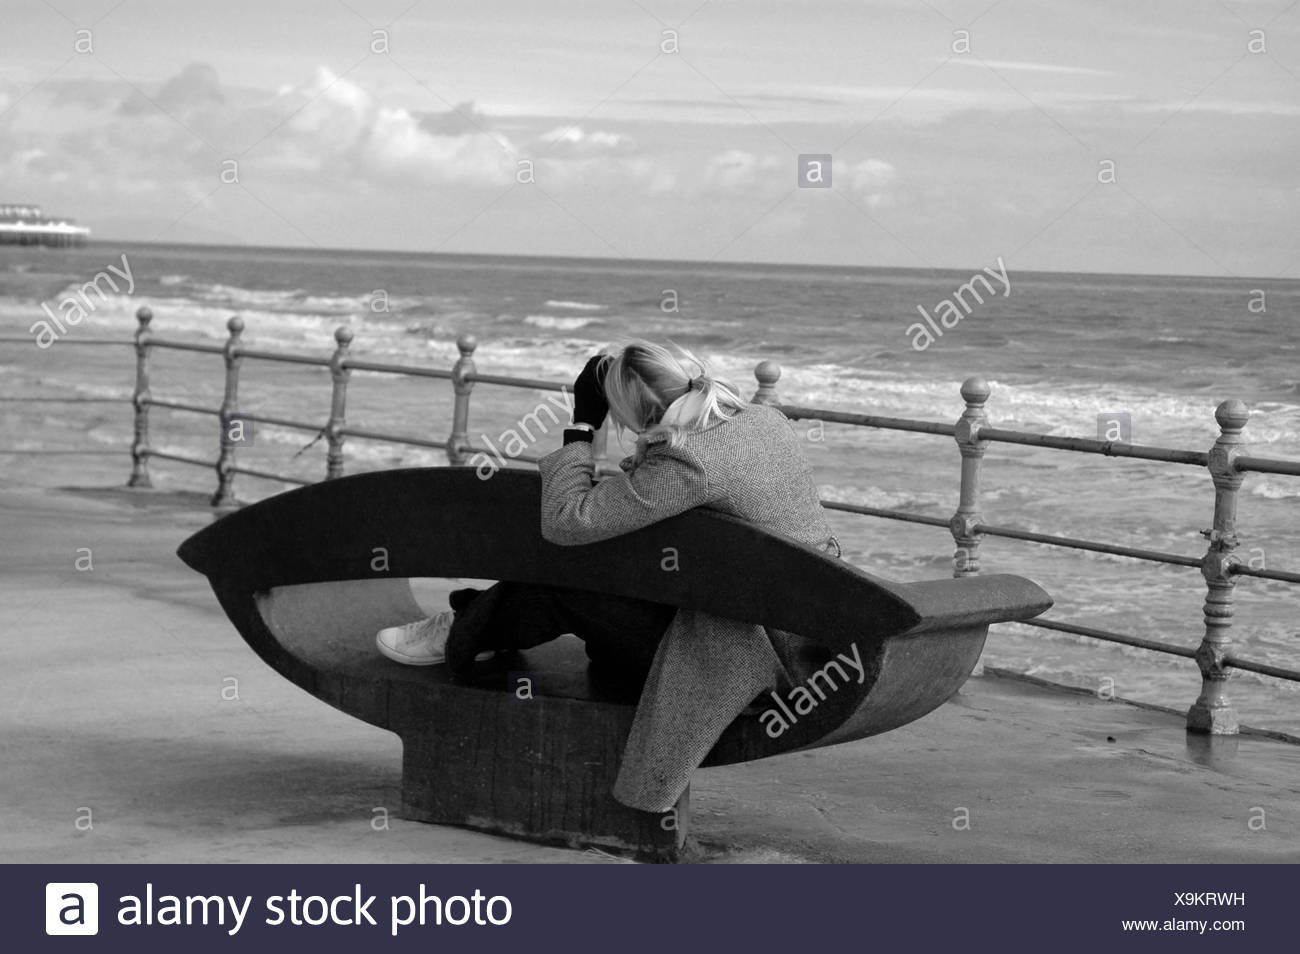 Girl on bench looking out at sea - Stock Image